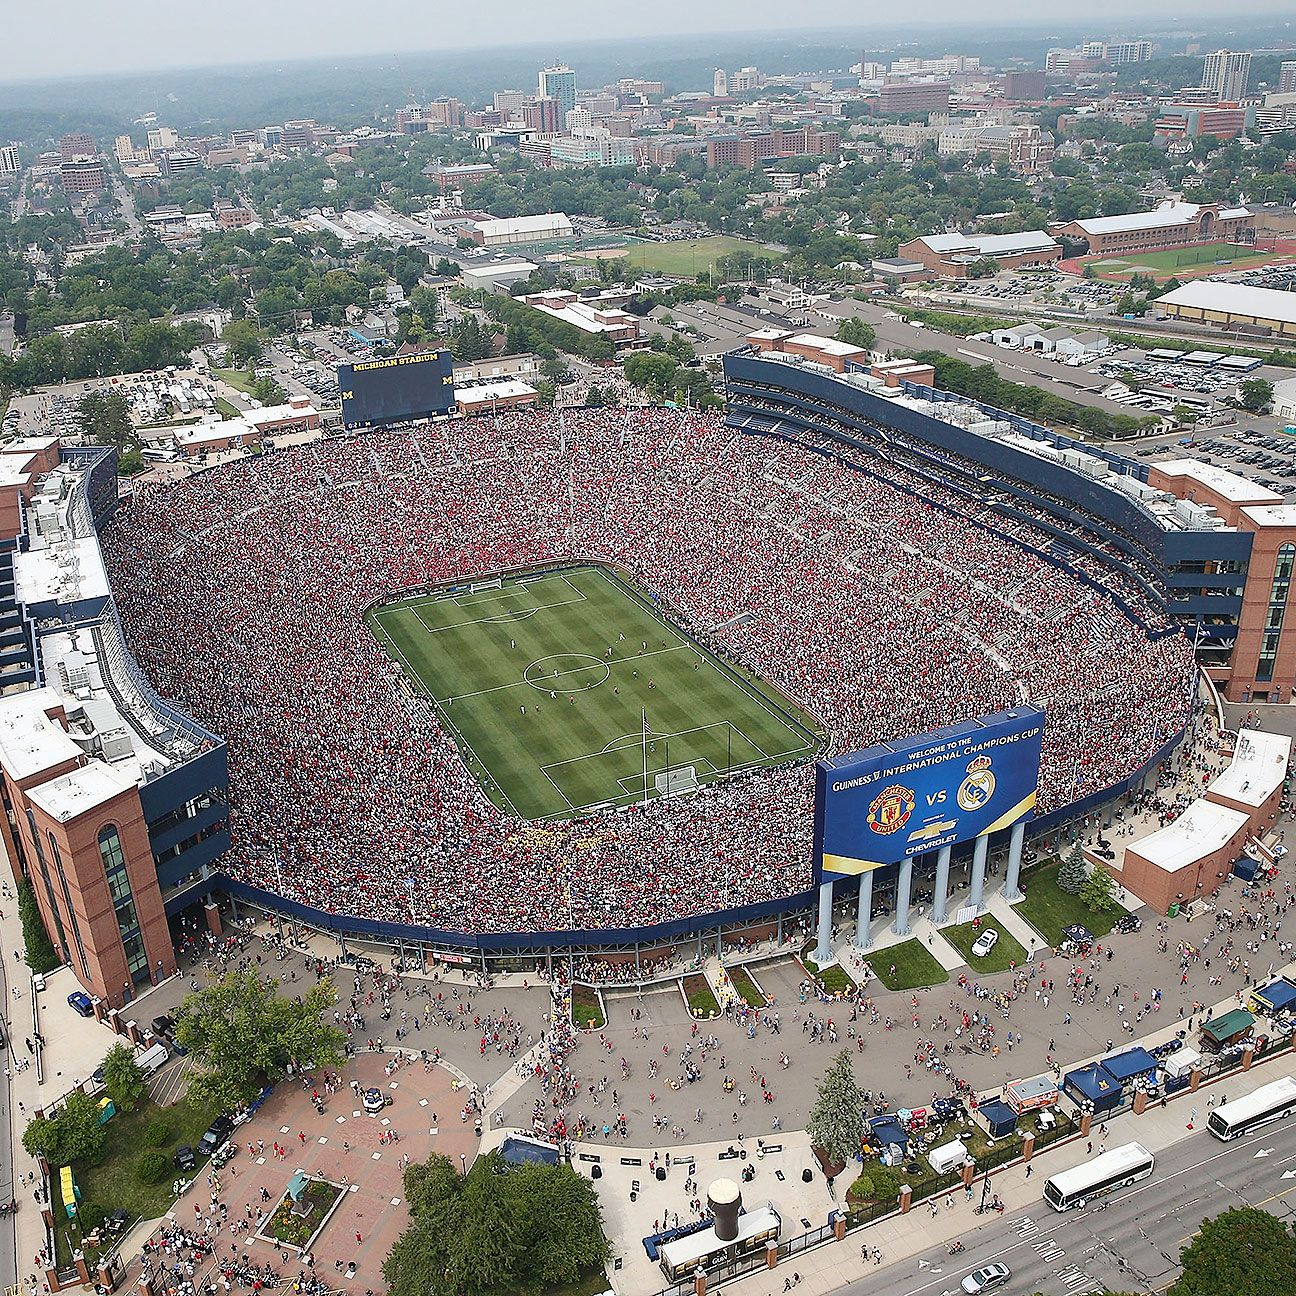 A crowd of 109,318 watched Real Madrid vs. Manchester United in Michigan in 2014, and the La Liga giants could return to play league games.